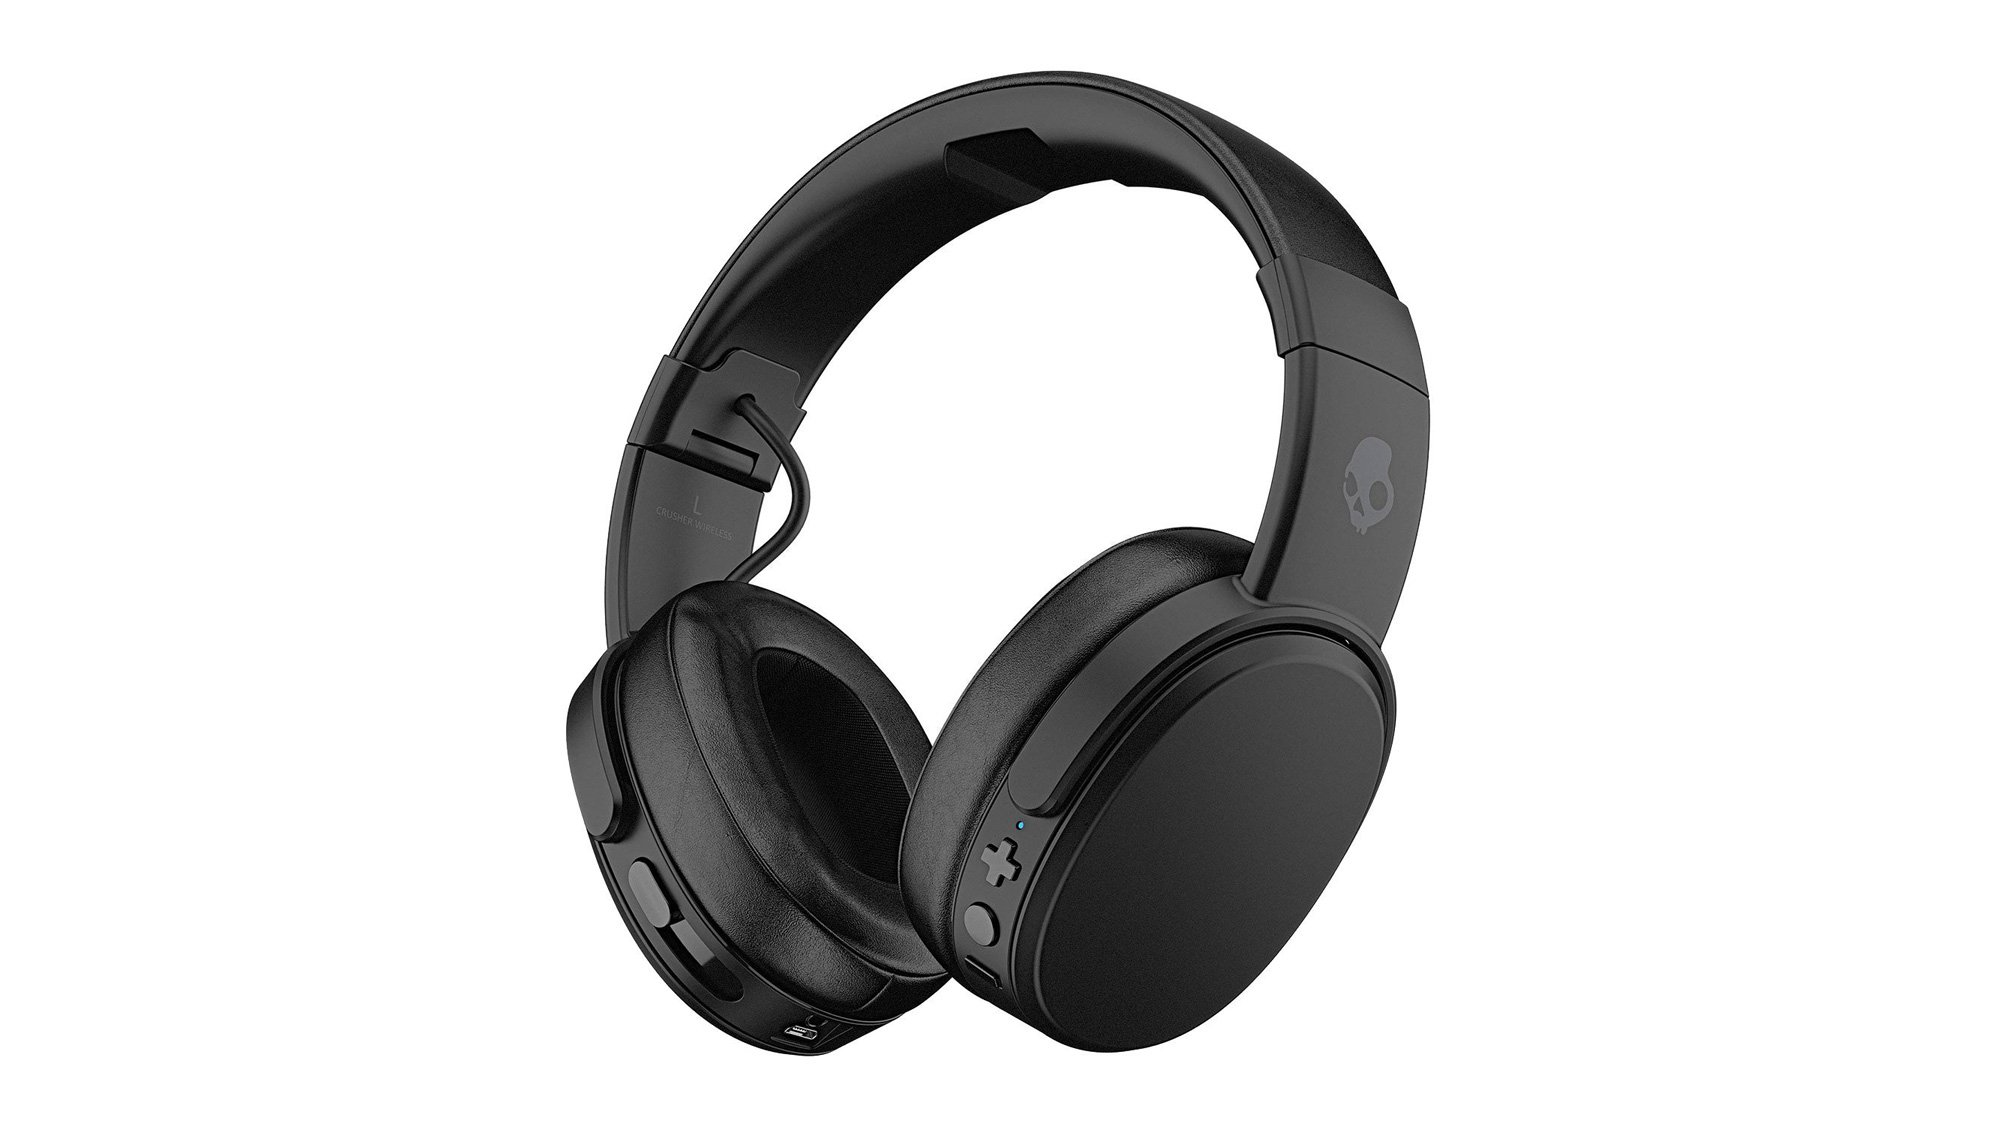 If you re looking for over-the-ear Bluetooth headphones with a lot of bass 6866338c39ebc